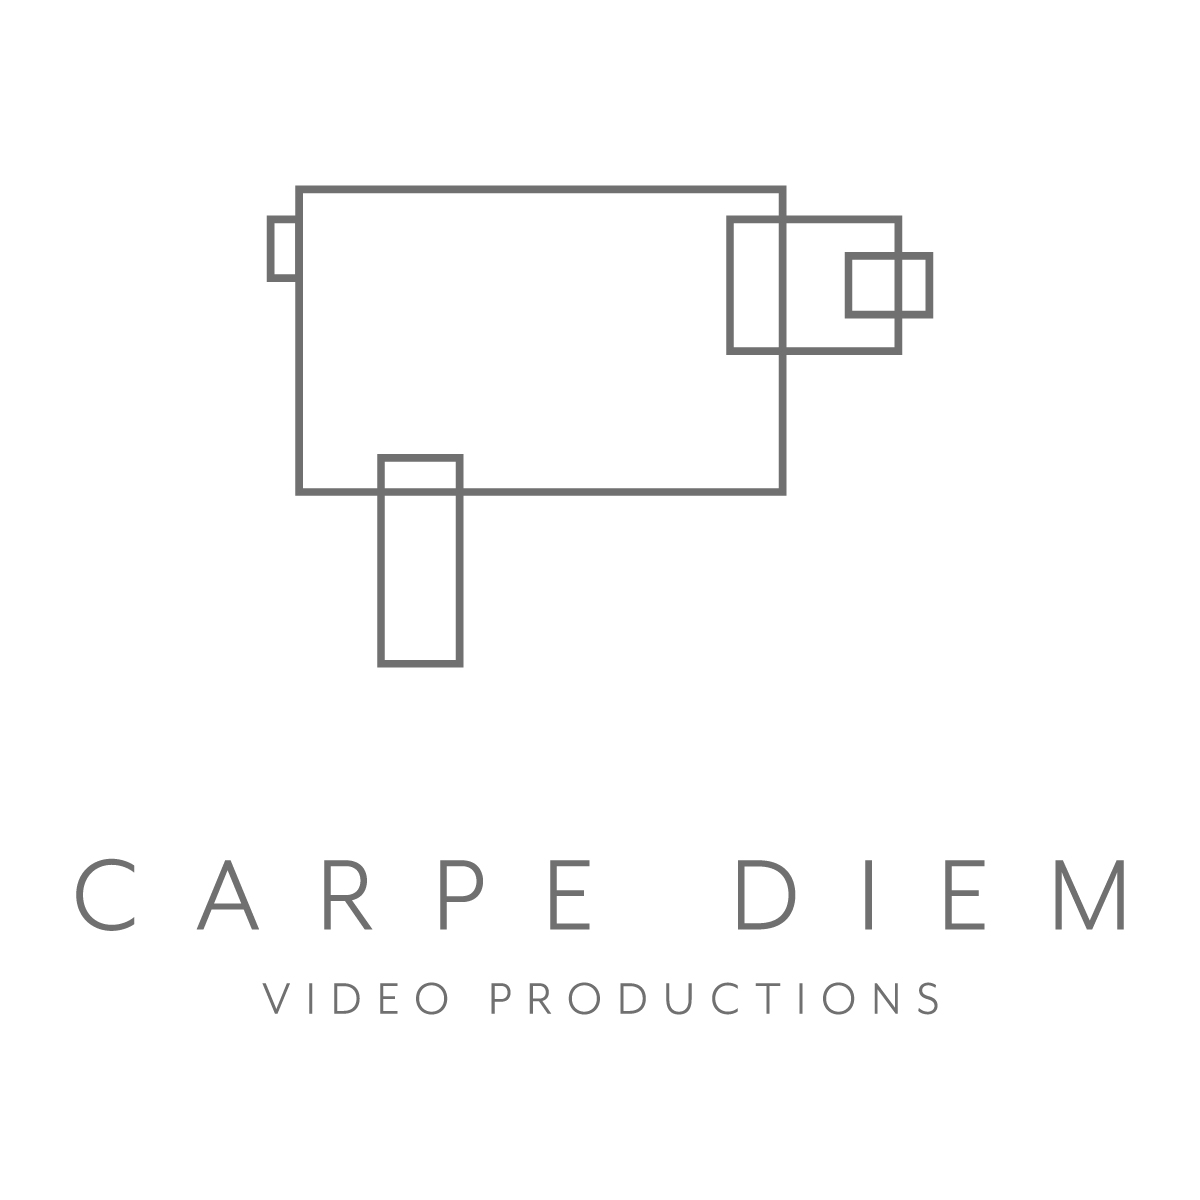 Carpe Diem Video Productions